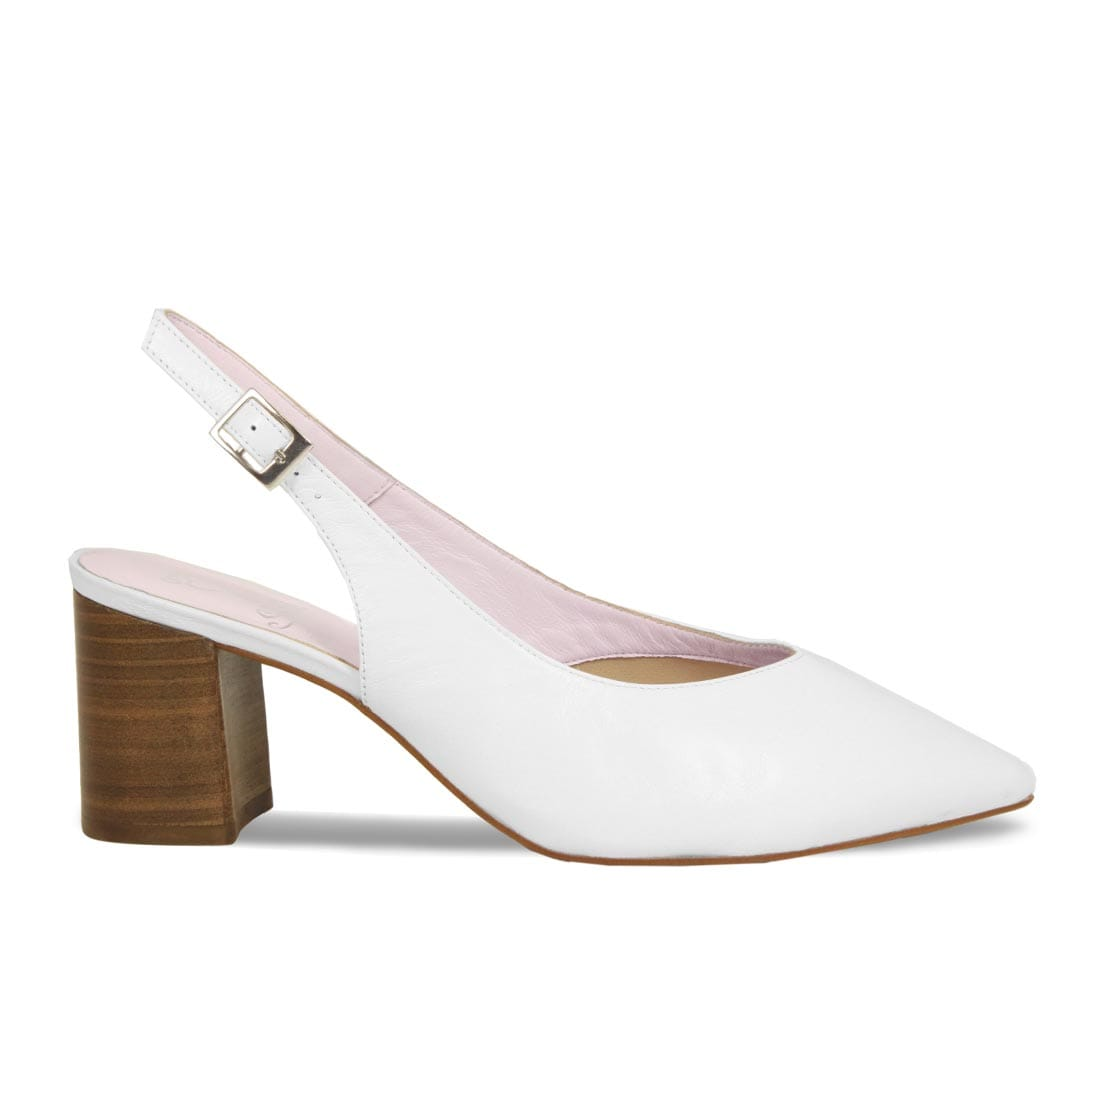 White Leather Sling-Back Block Heels